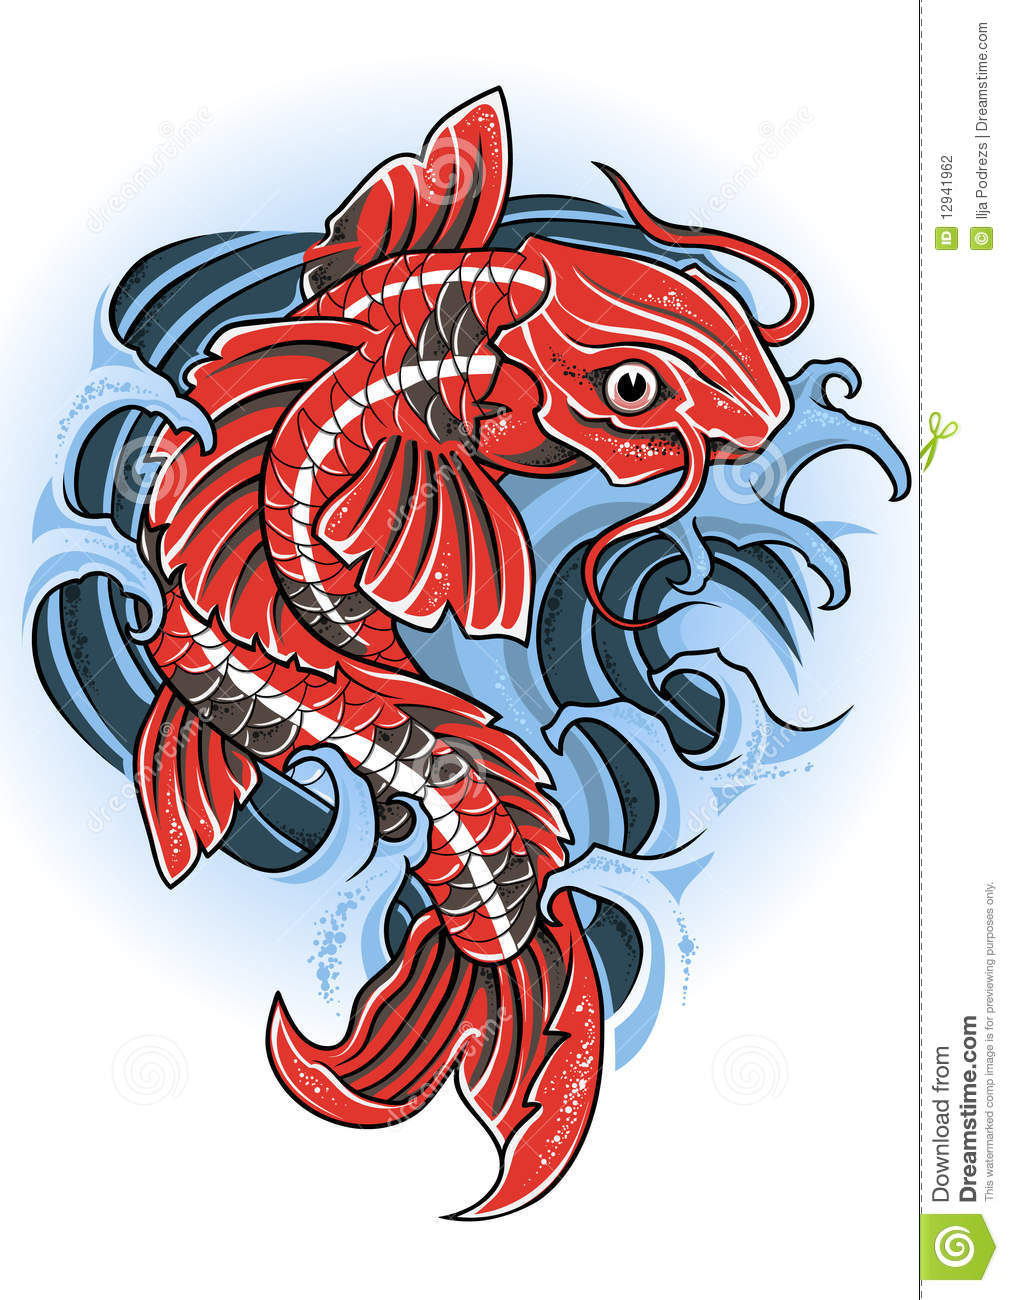 Koi stock vector. Illustration of ancient, japanese, carp - 12941962